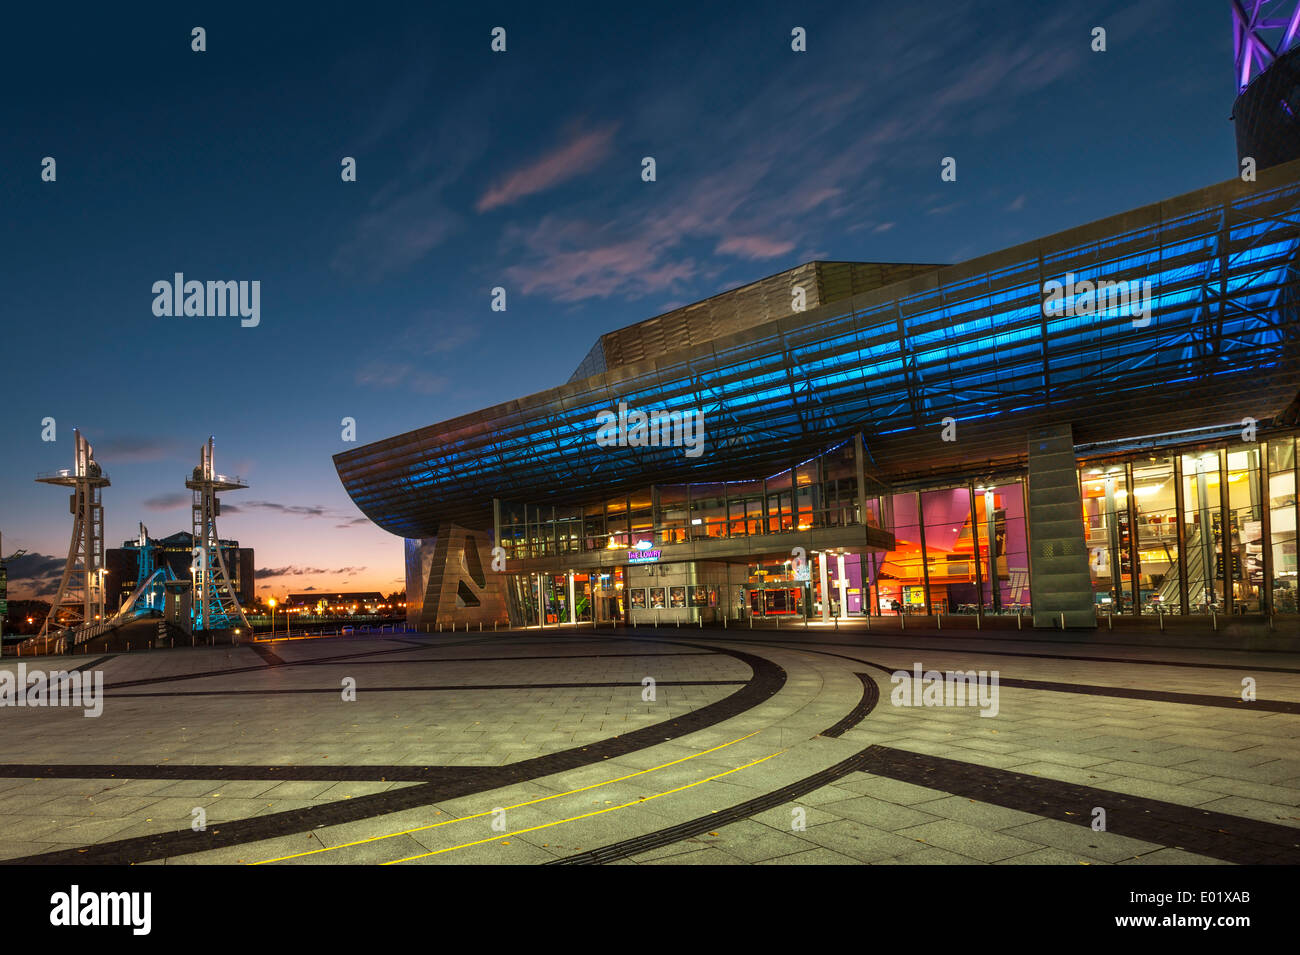 Lowry Theatre Salford Quays Manchester - Stock Image